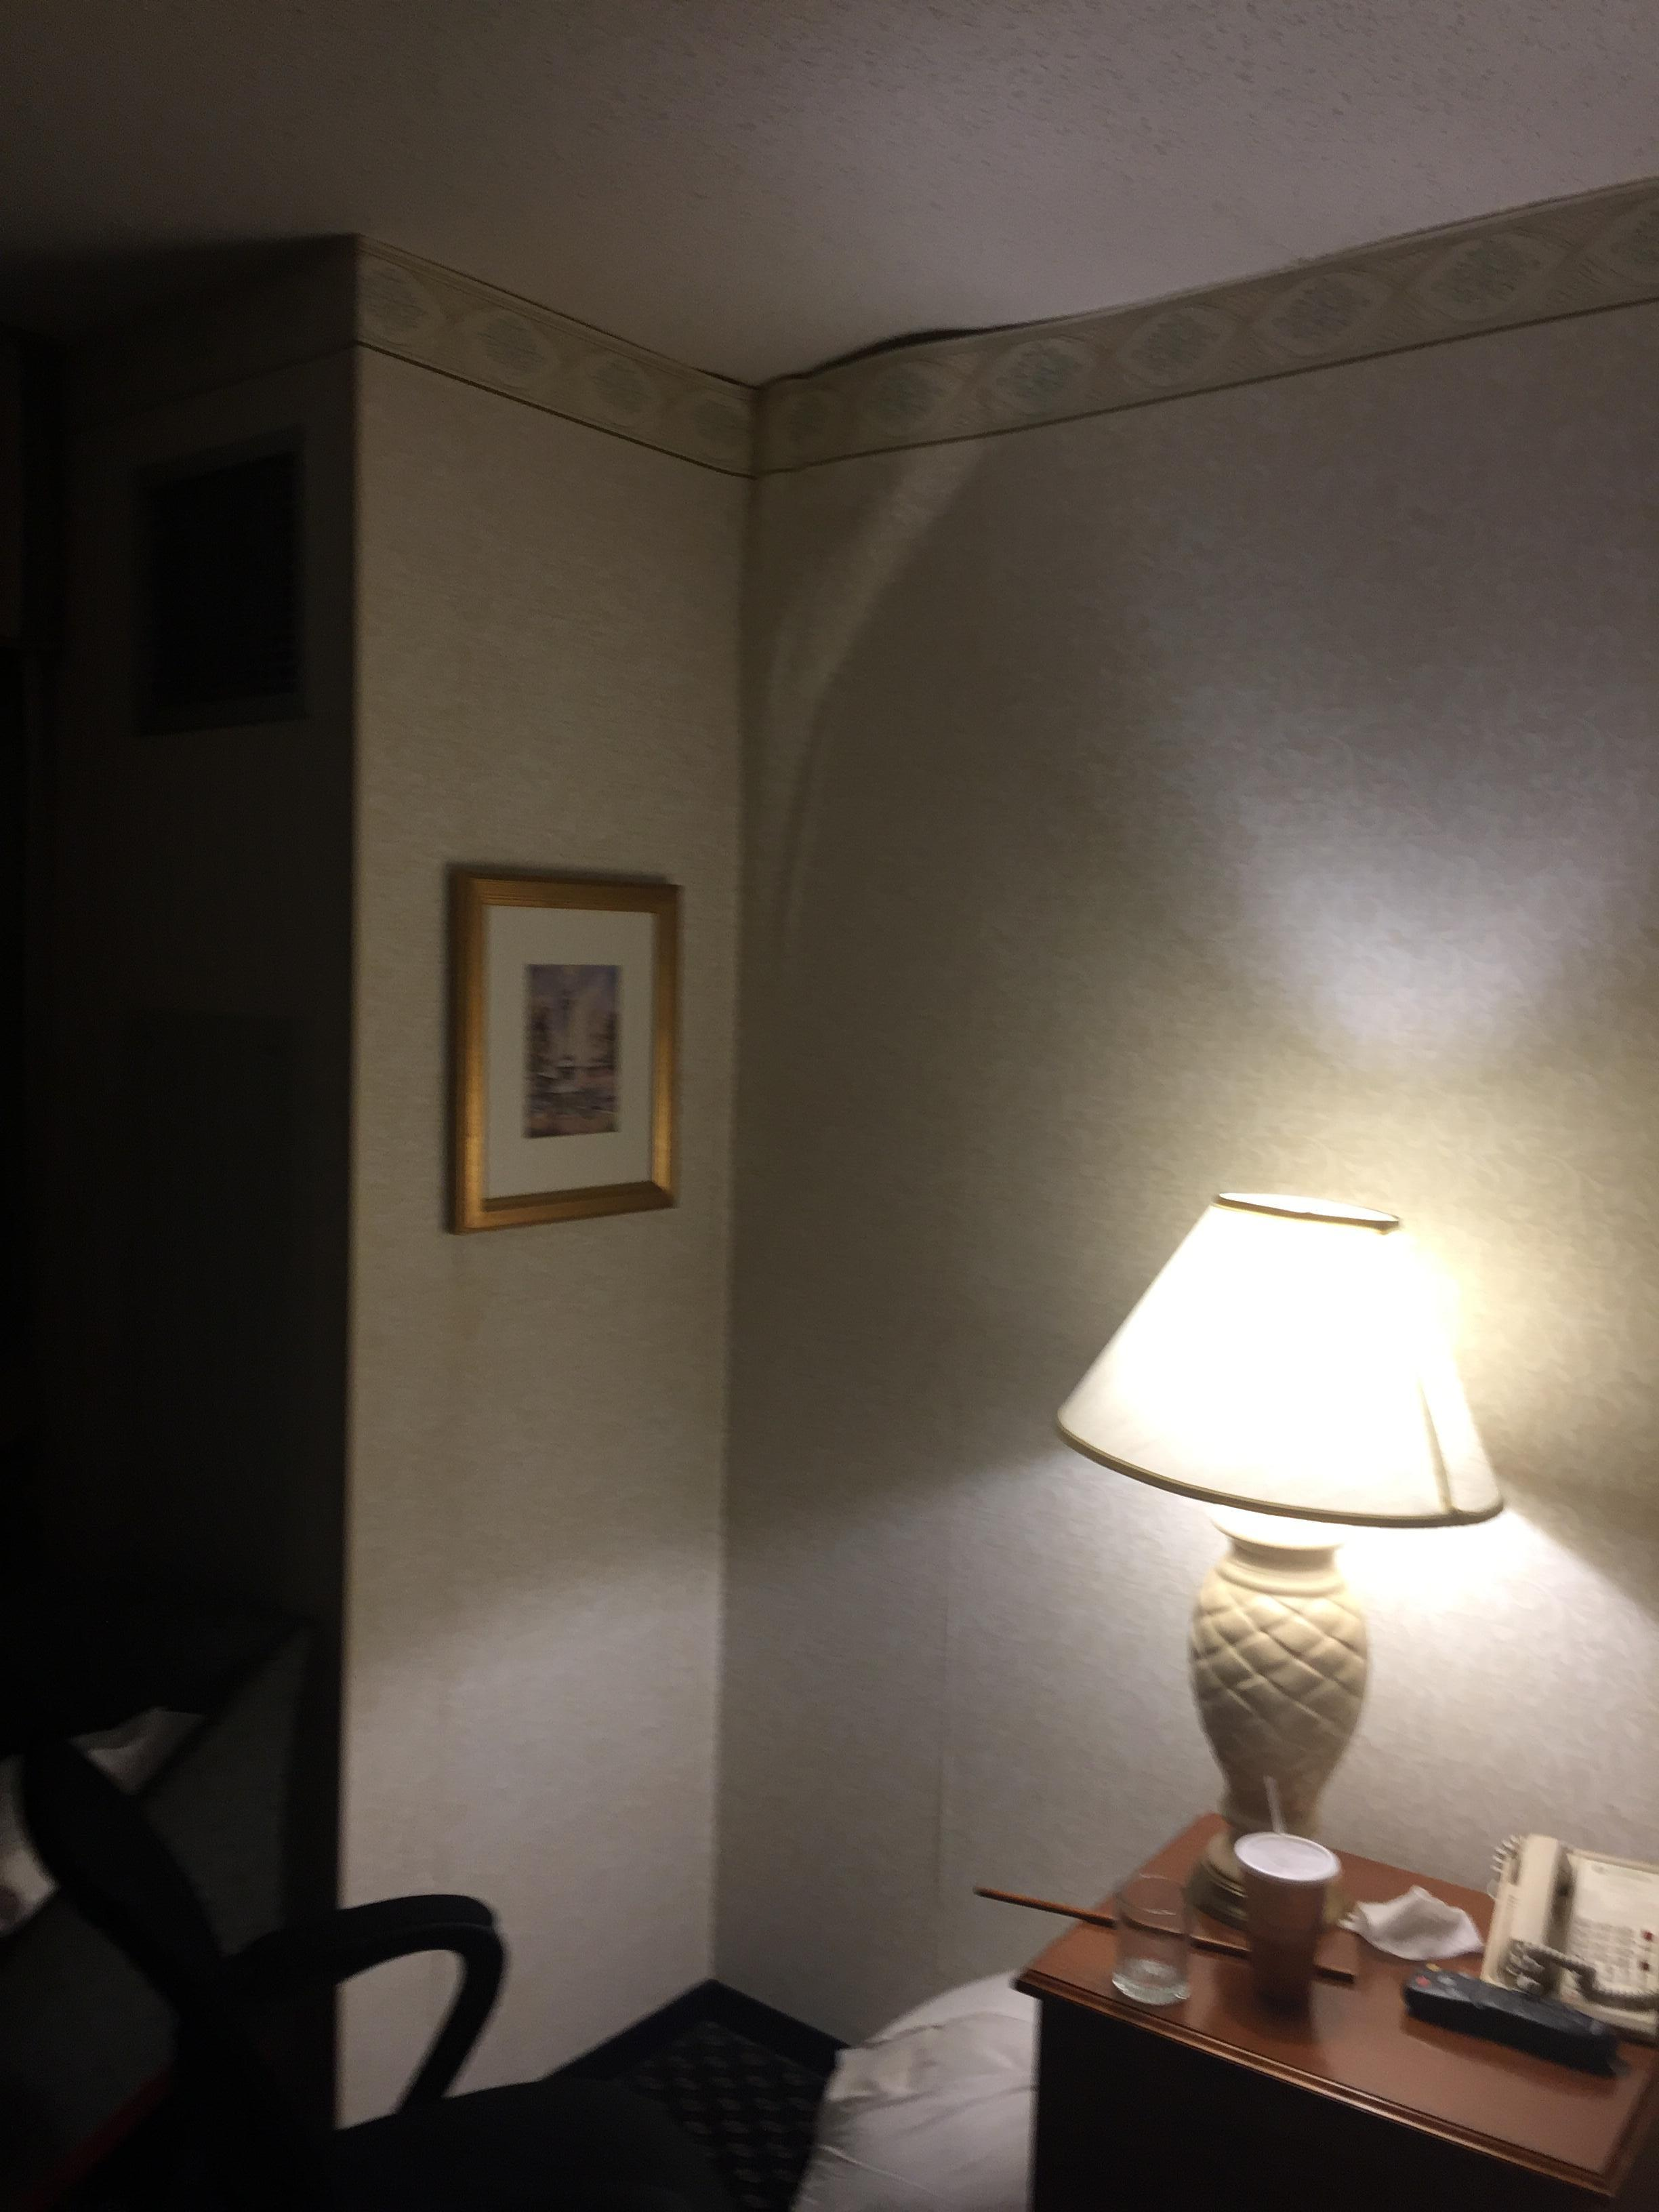 Wallpaper falling loose from wall.